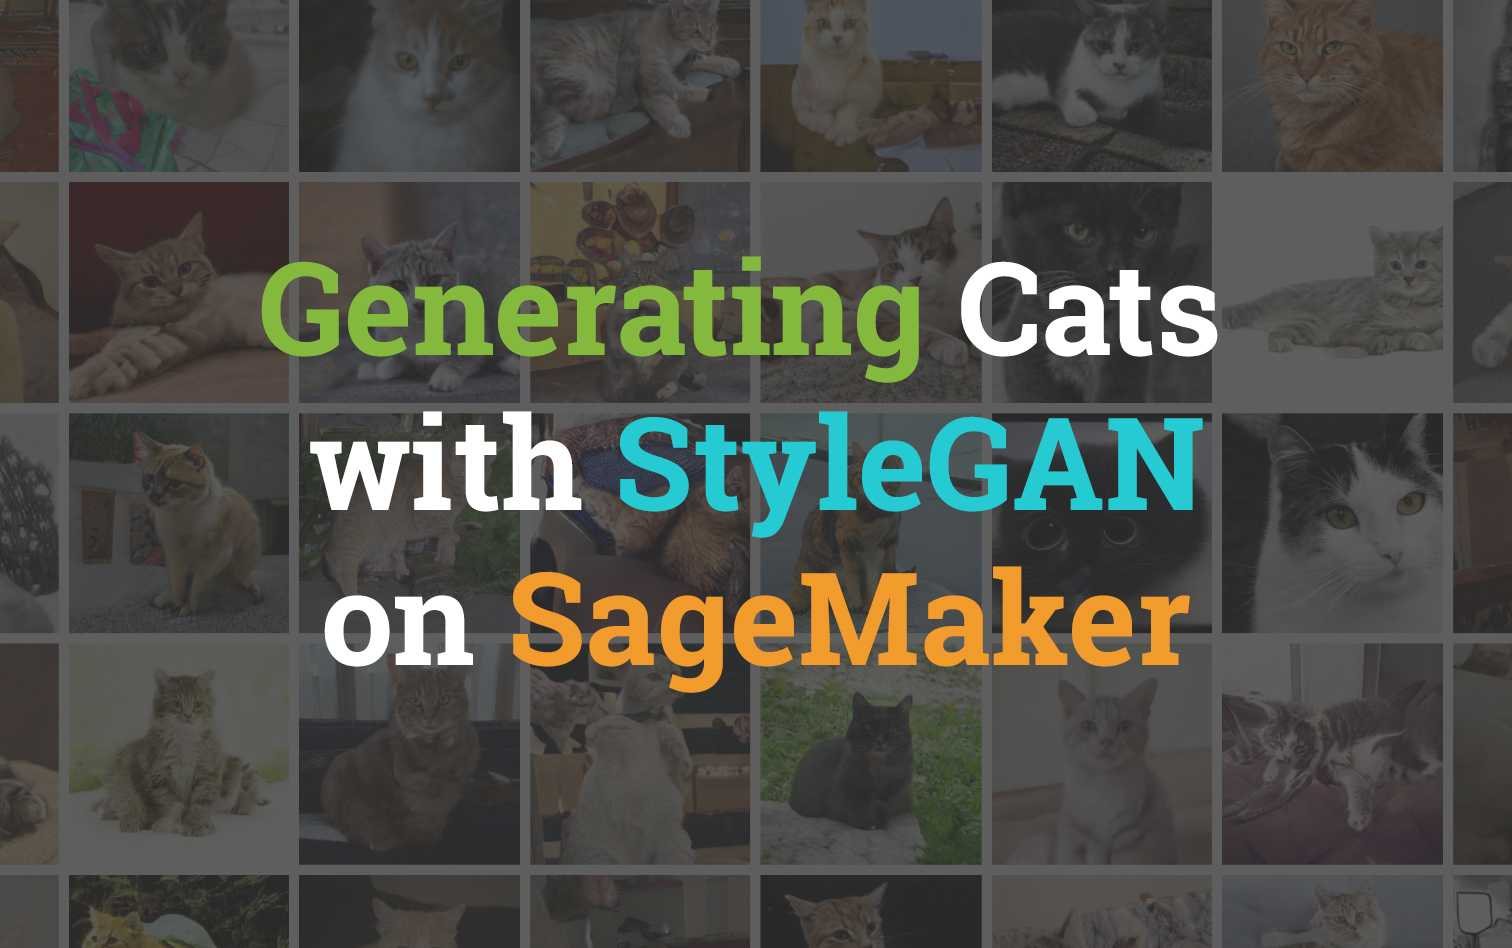 Generating Cats with StyleGAN on AWS SageMaker